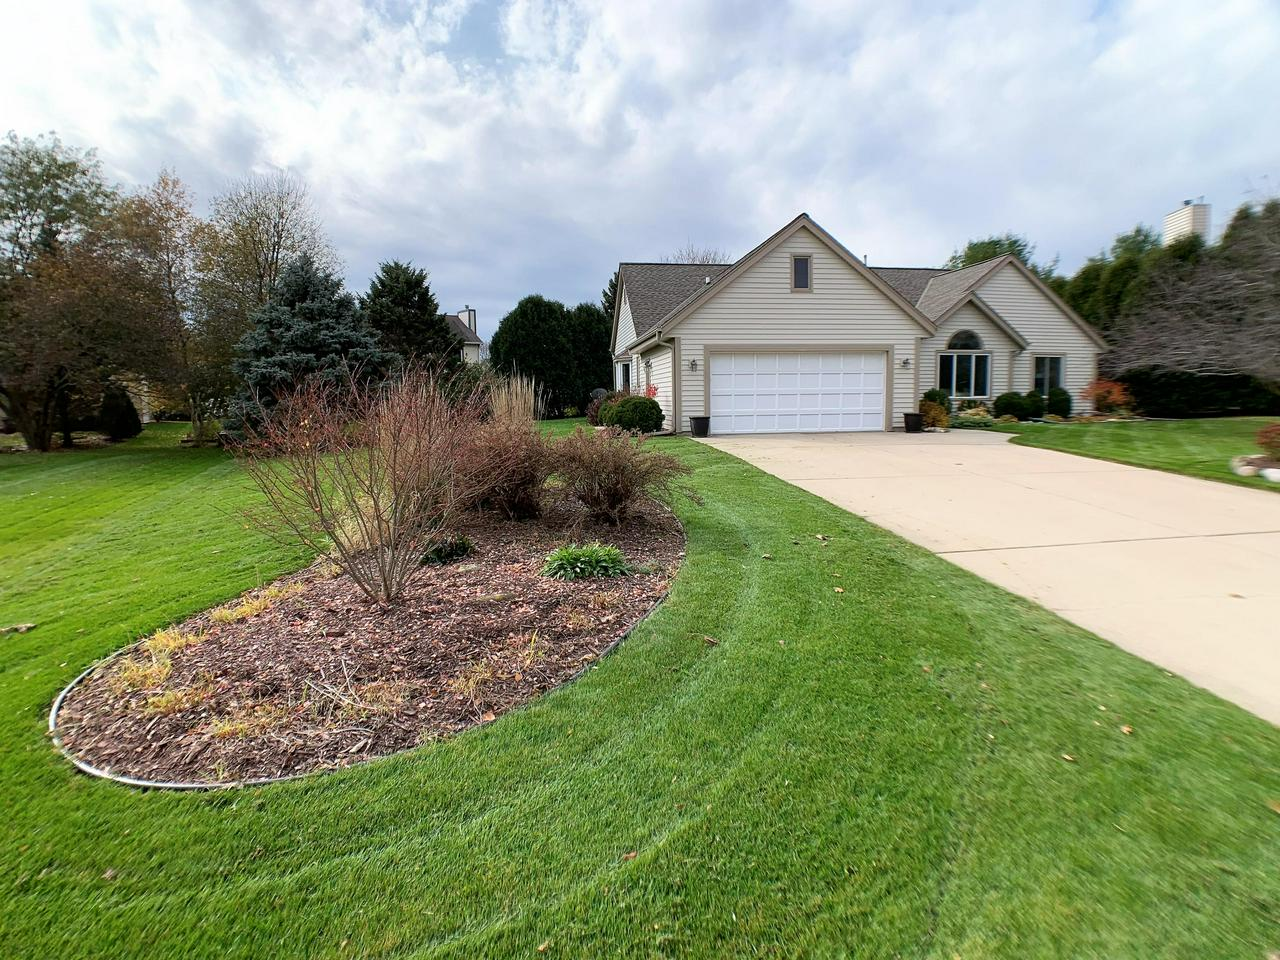 This stunning ranch home is sure to impress the fussiest buyer! This home features a beautifully updated kitchen with newer Stainless Steel appliances and Quartz counters! Open airy great room with vaulted ceiling and a gas fireplace. Spacious Master Suite features large walk in closet and bath with double sinks. Also features a slider to the patio and backyard. Two other bedrooms are large and bright with ample closet space. Main floor laundry with washer and dryer included! Finished lower level offers kitchenette, large gathering space, and a full bath! Ample storage in the unfinished area of the basement or in the newer shed in the backyard! This one will impress you!